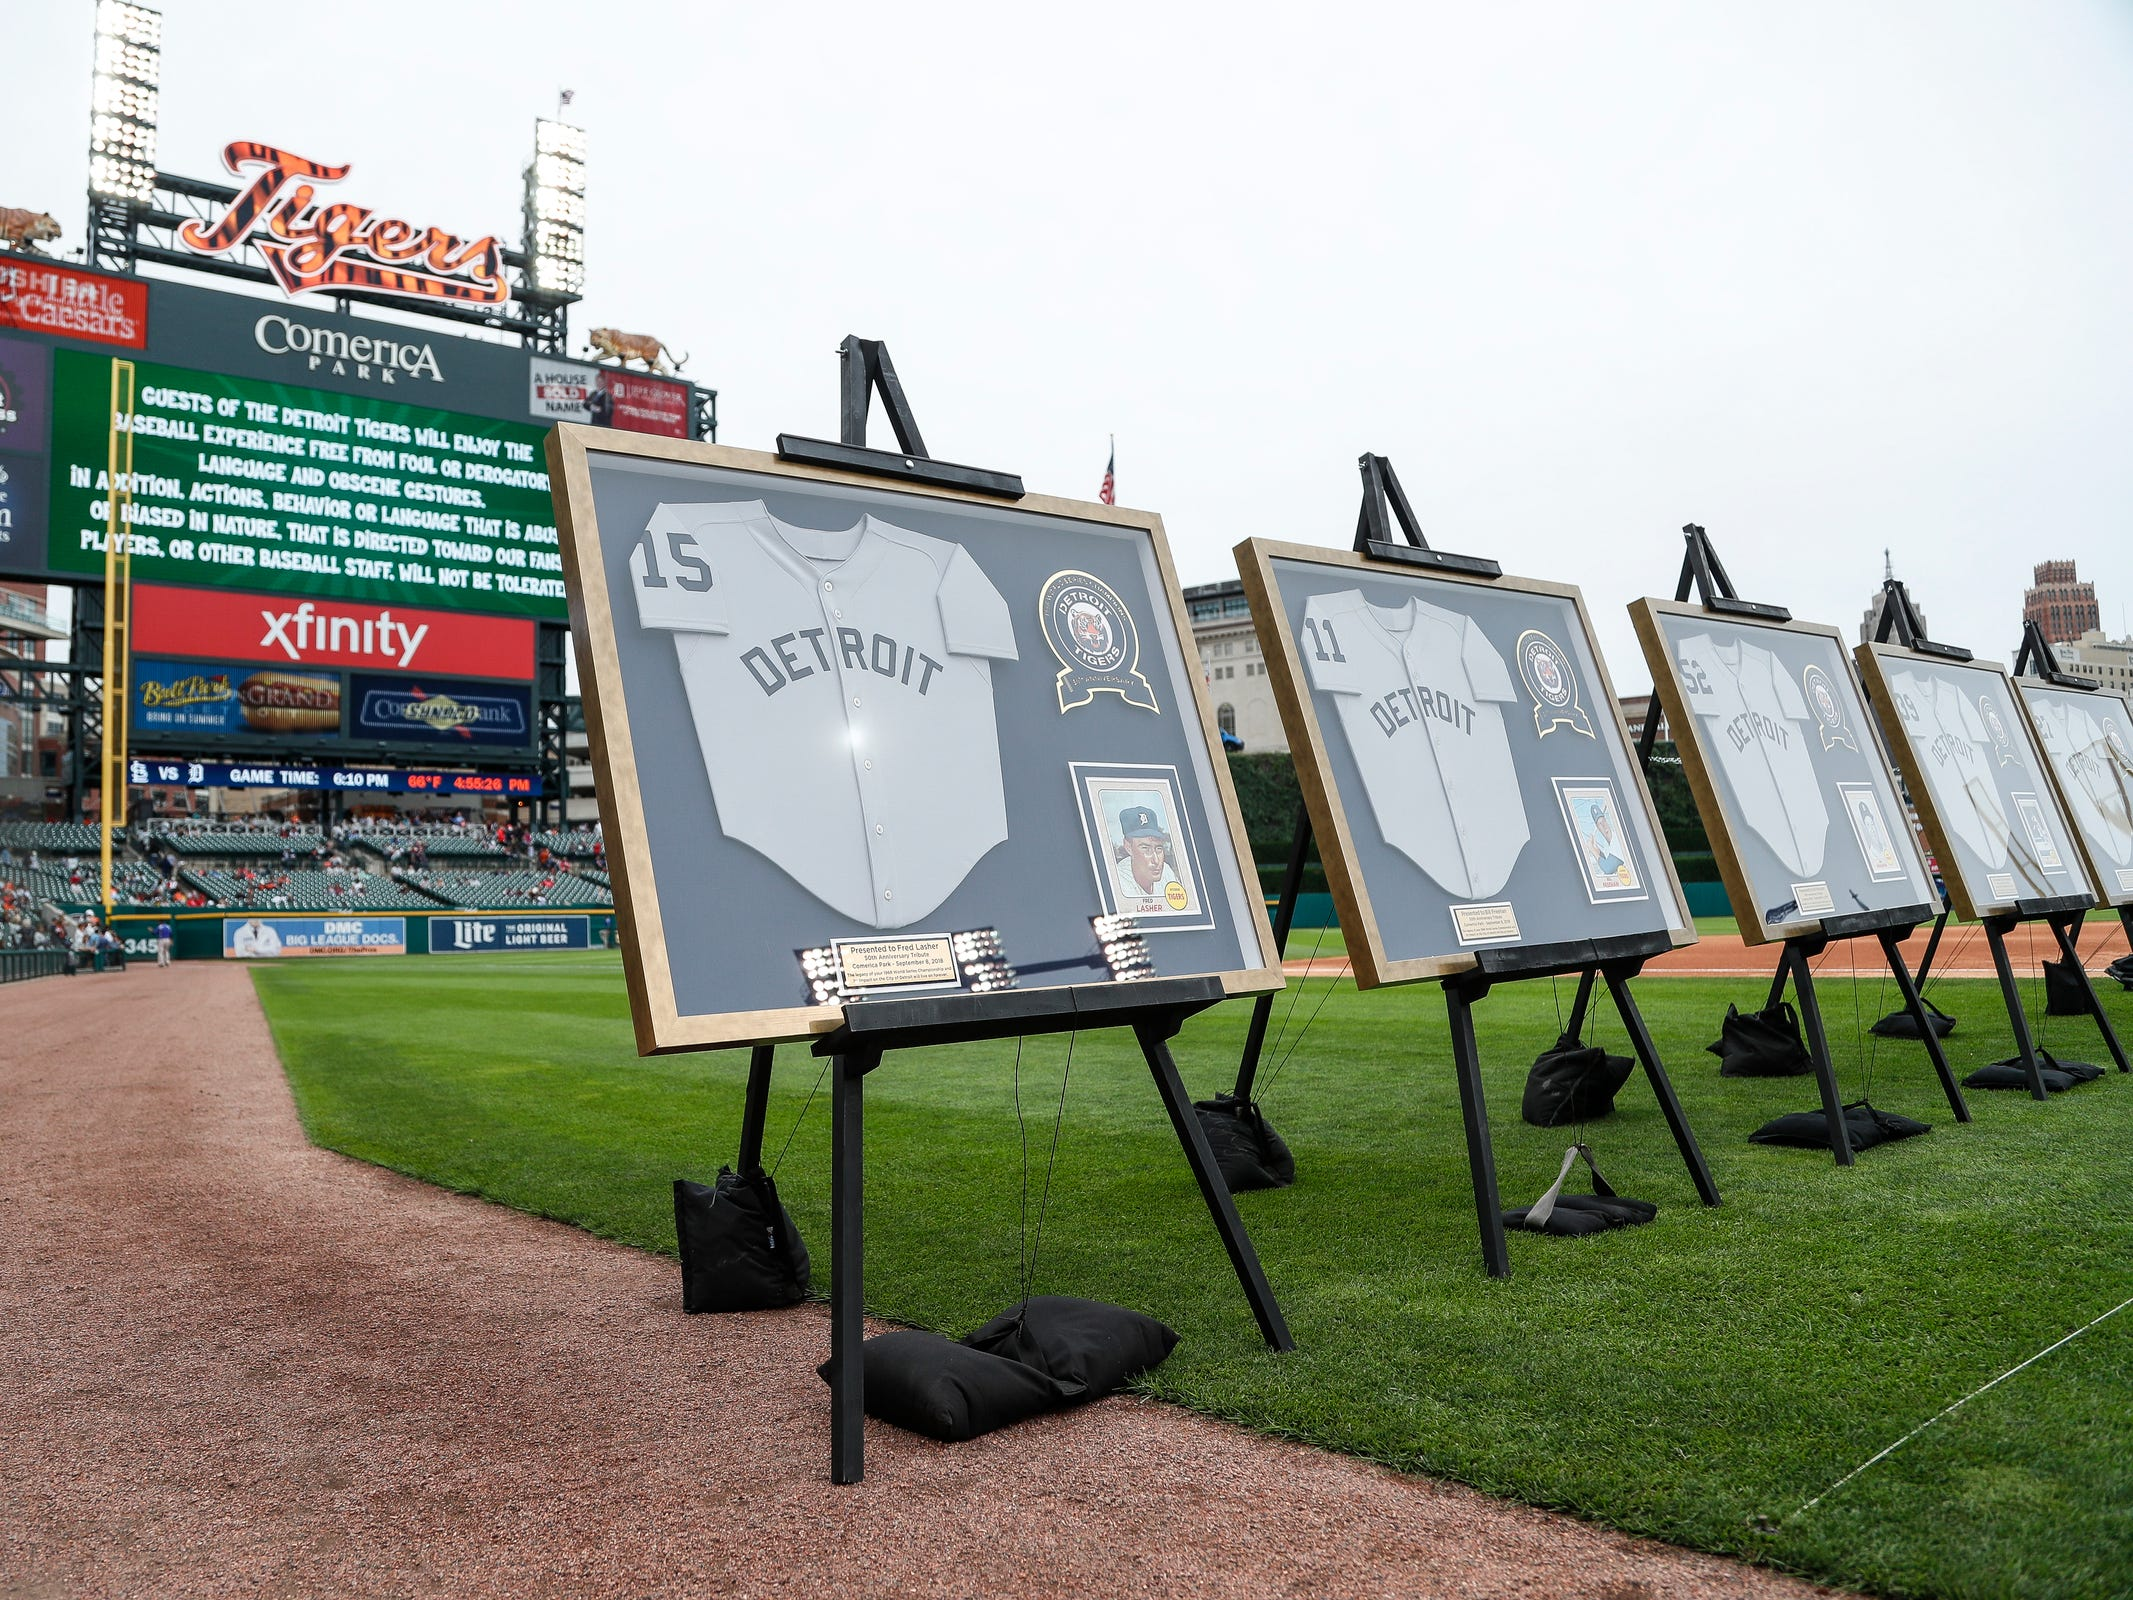 1968 Detroit Tigers World Series championship team are honored during the celebration of the 50th anniversary of the 1968 World Series championship at Comerica Park in Detroit, Saturday, Sept. 8, 2018.